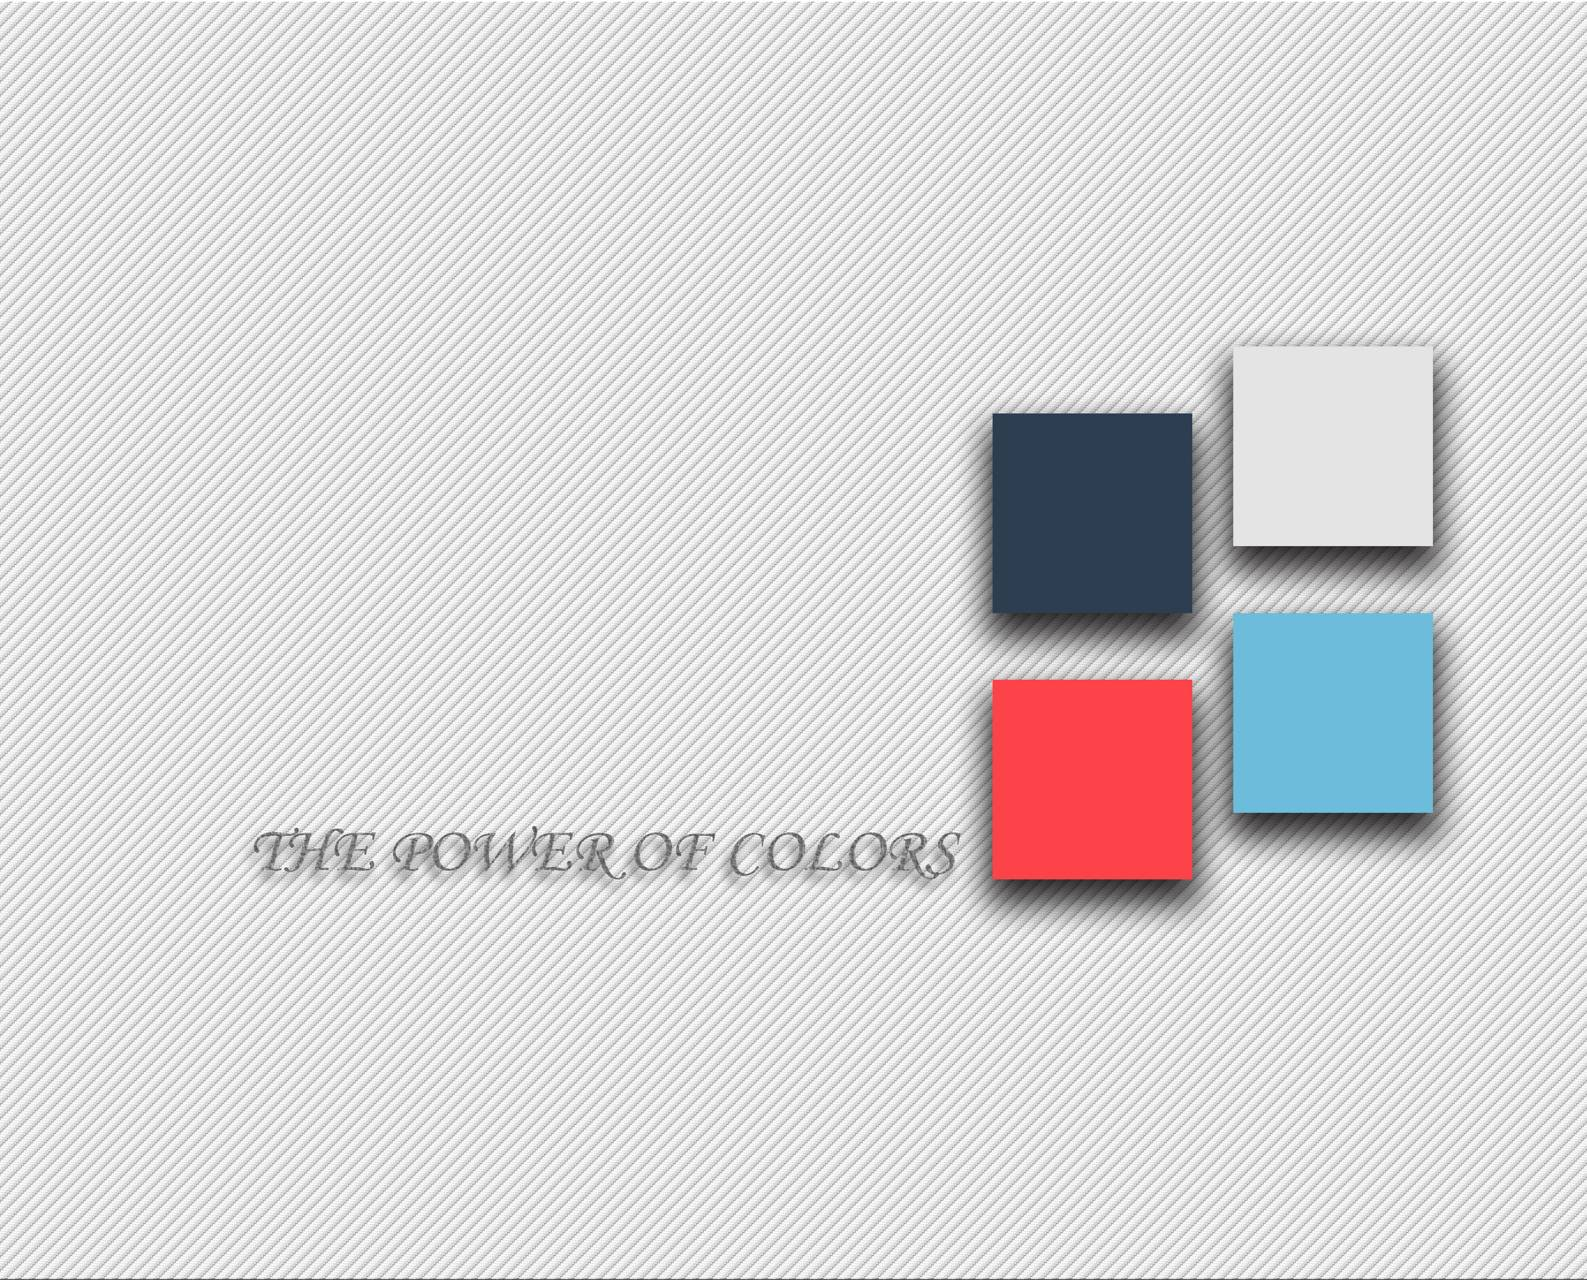 the power of colors